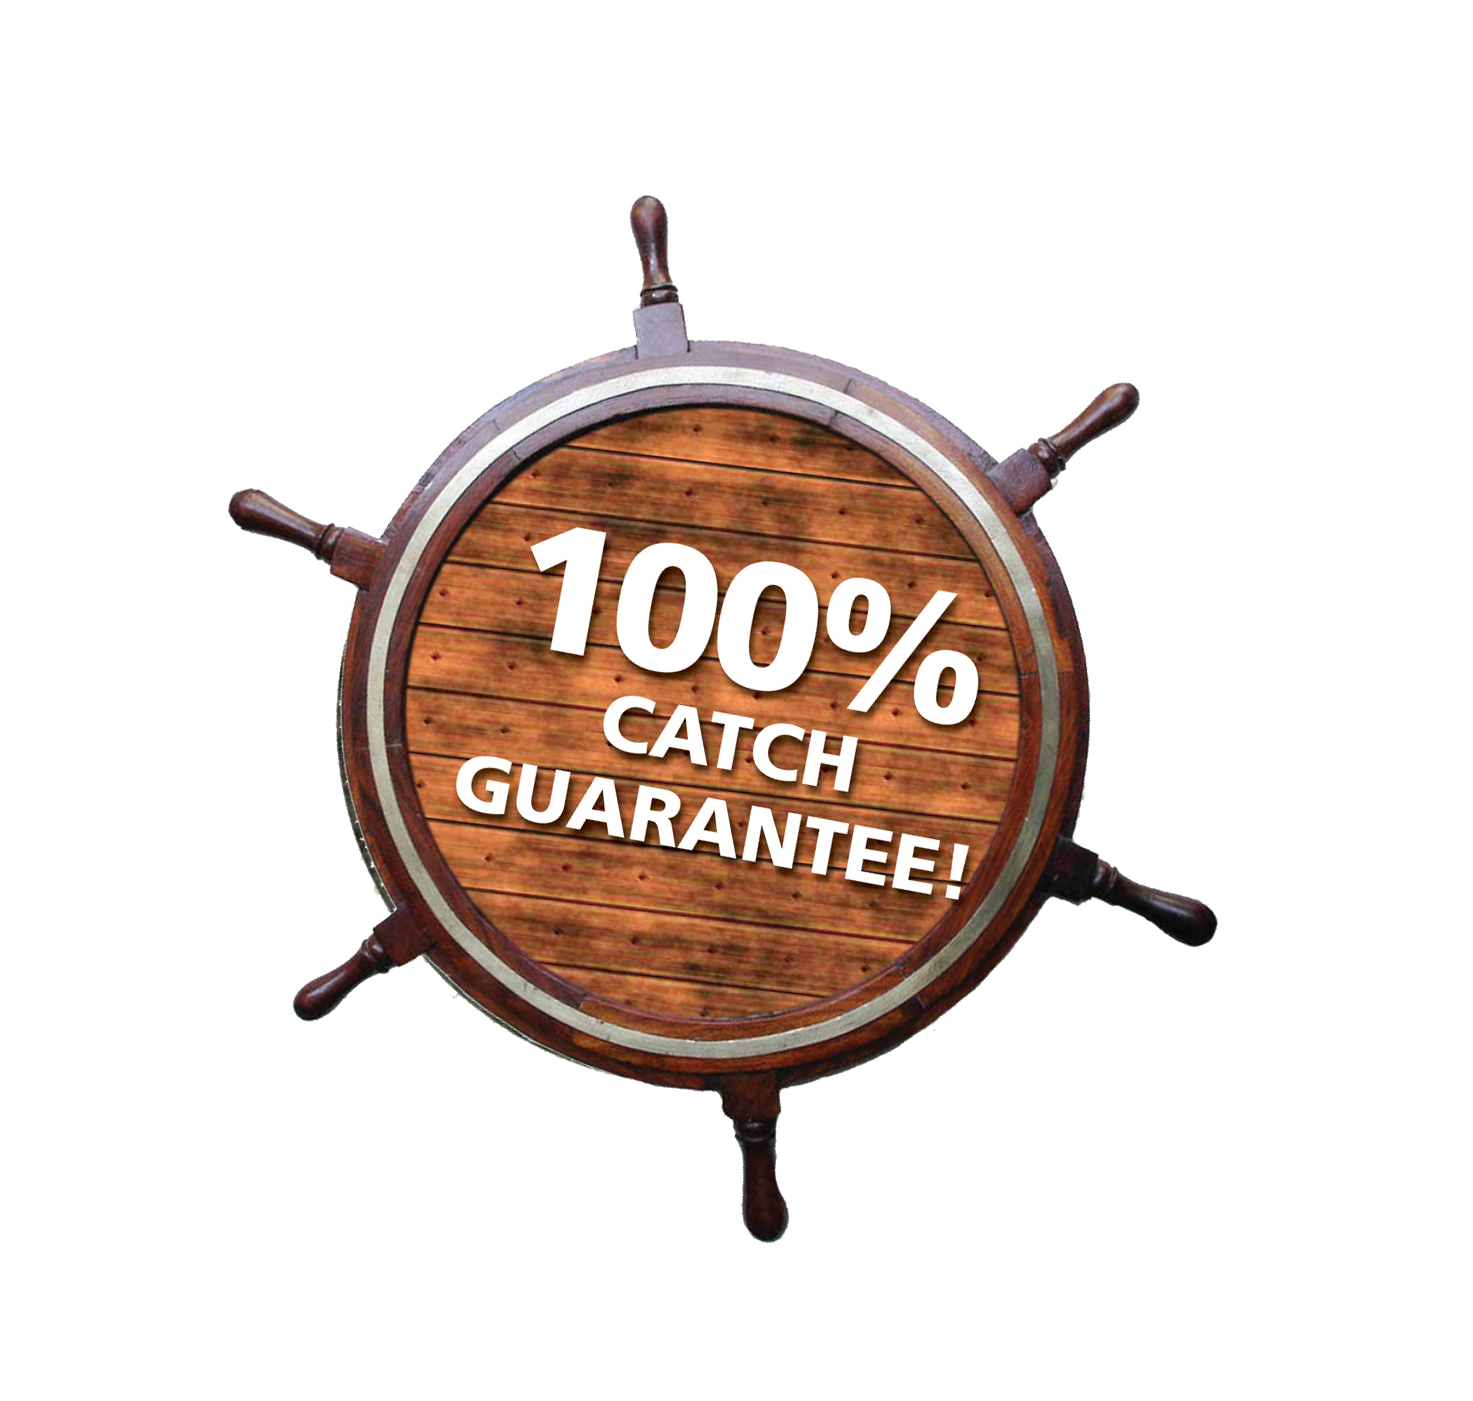 100% catch guarantee sea angling Húsavík Iceland